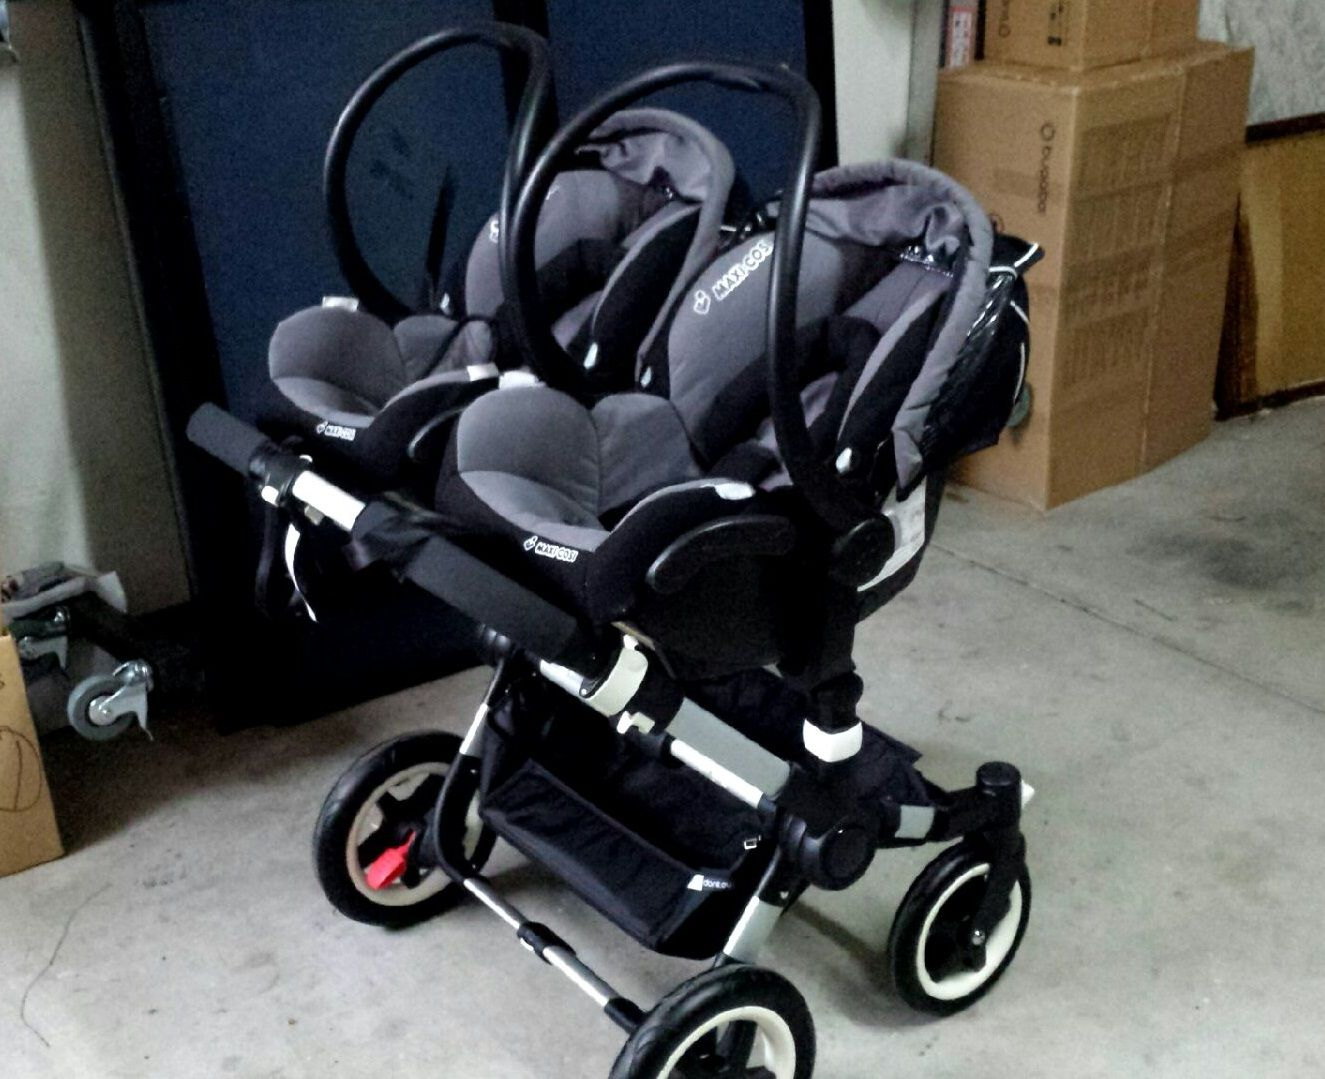 Maxi Cosi Car Seat For Baby Pin By Stroller Boutique On Pushchairs Baby Strollers